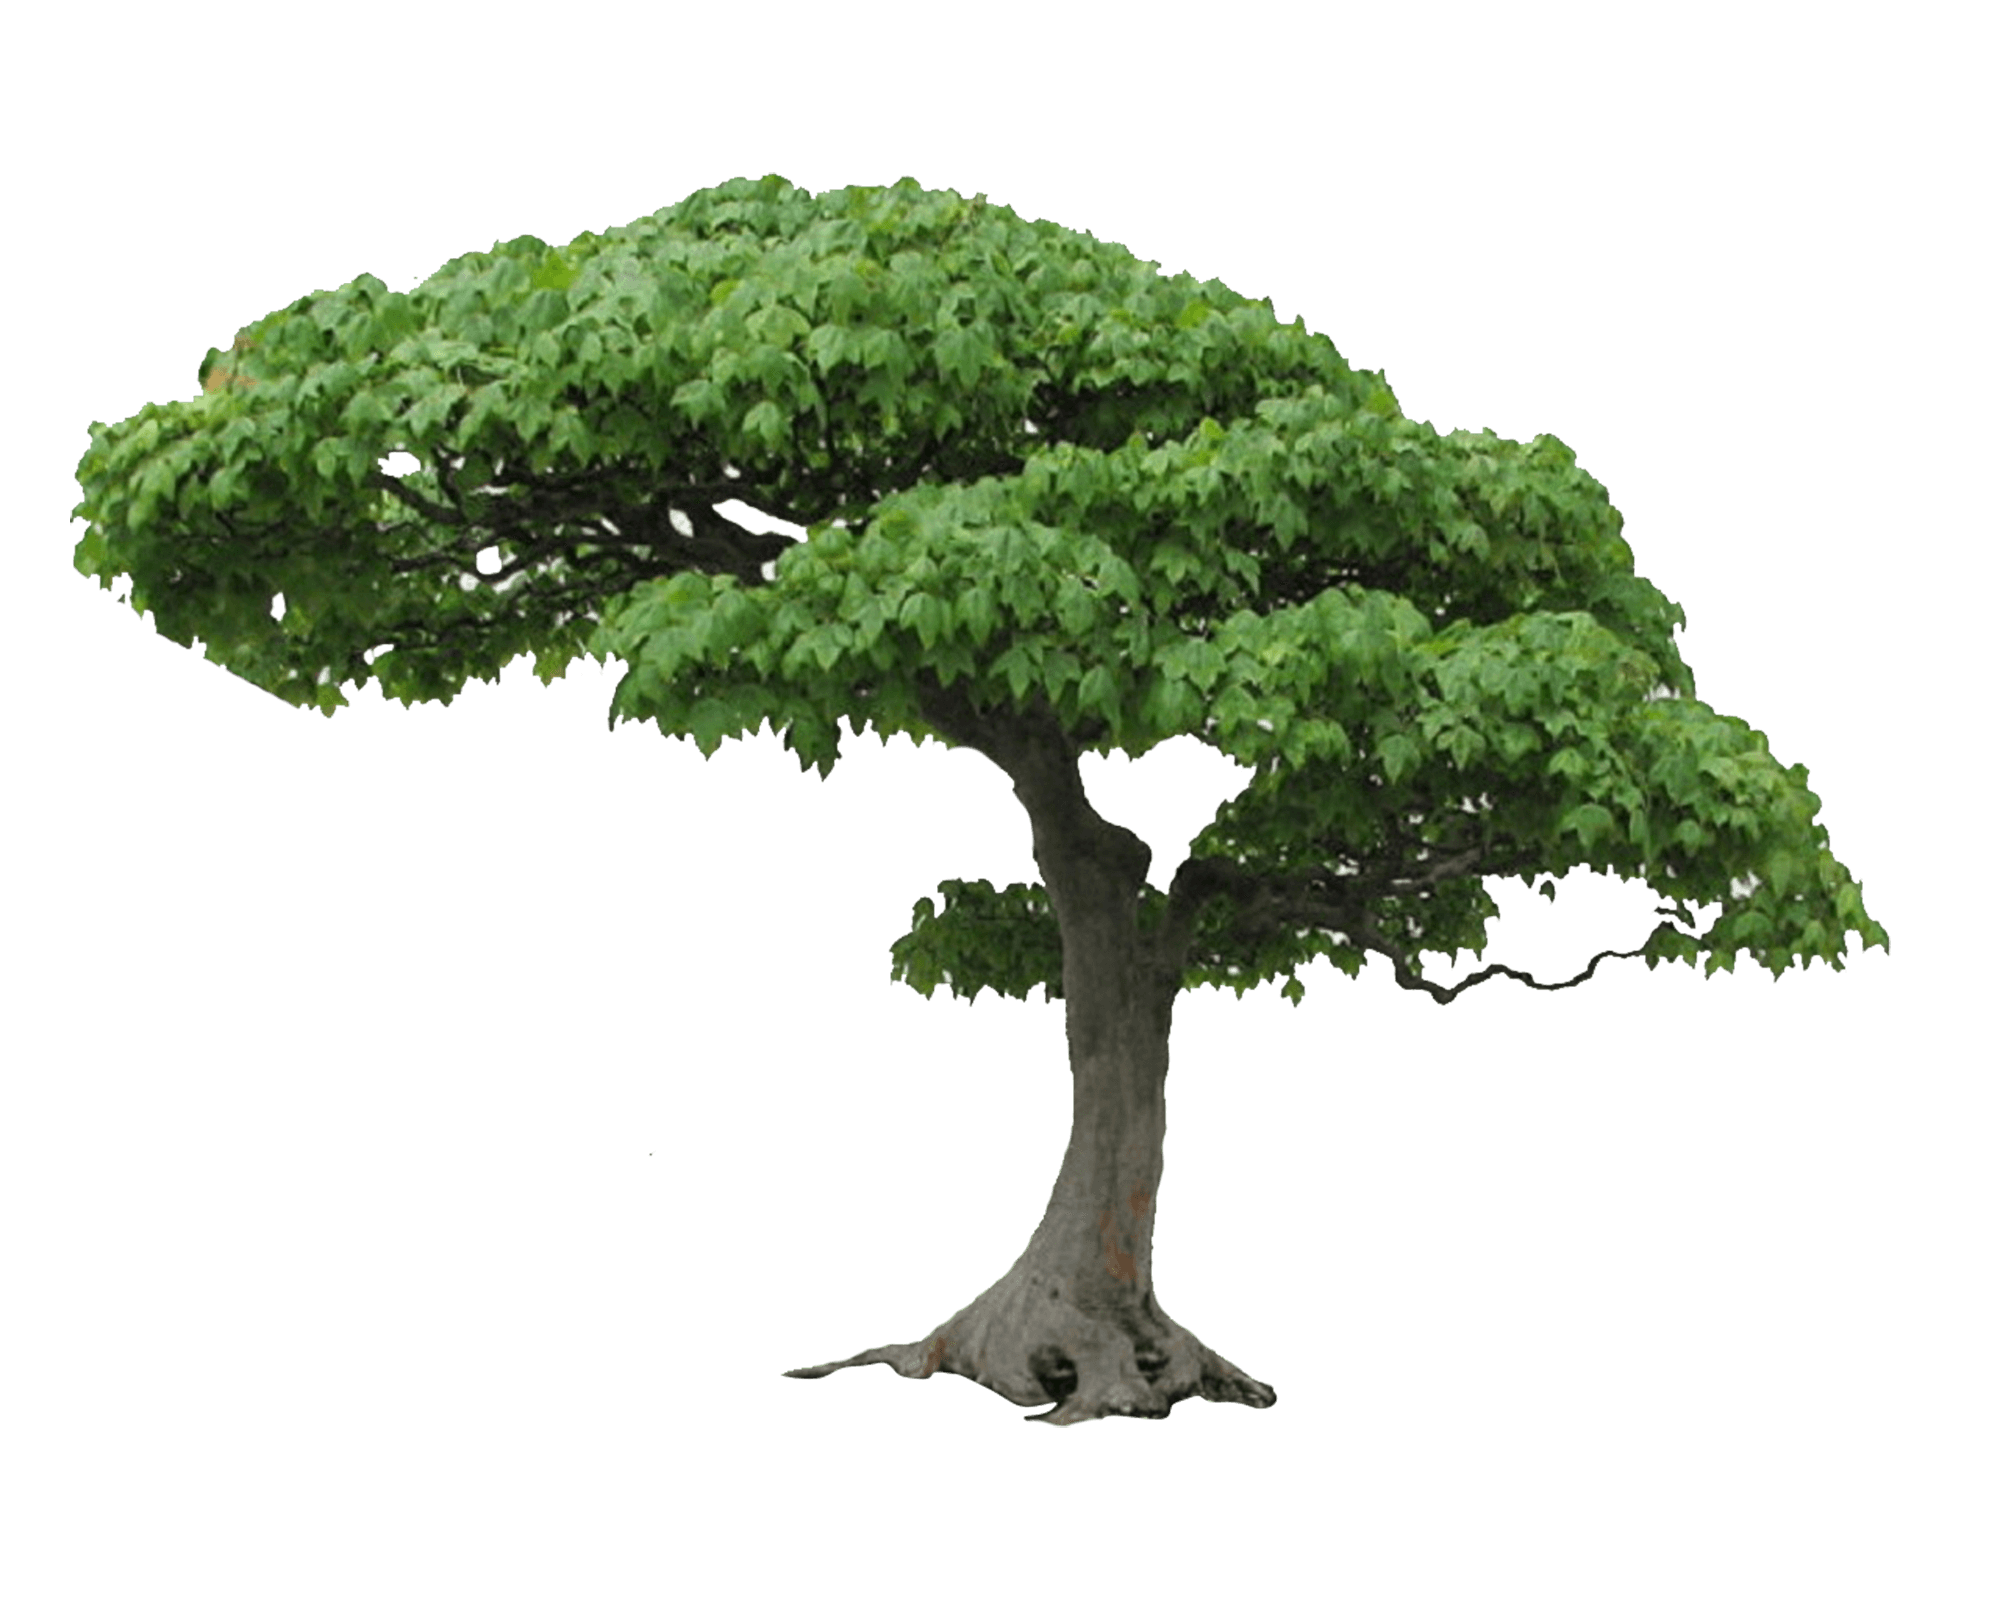 Bonsai tree png. Picture pngall com textures